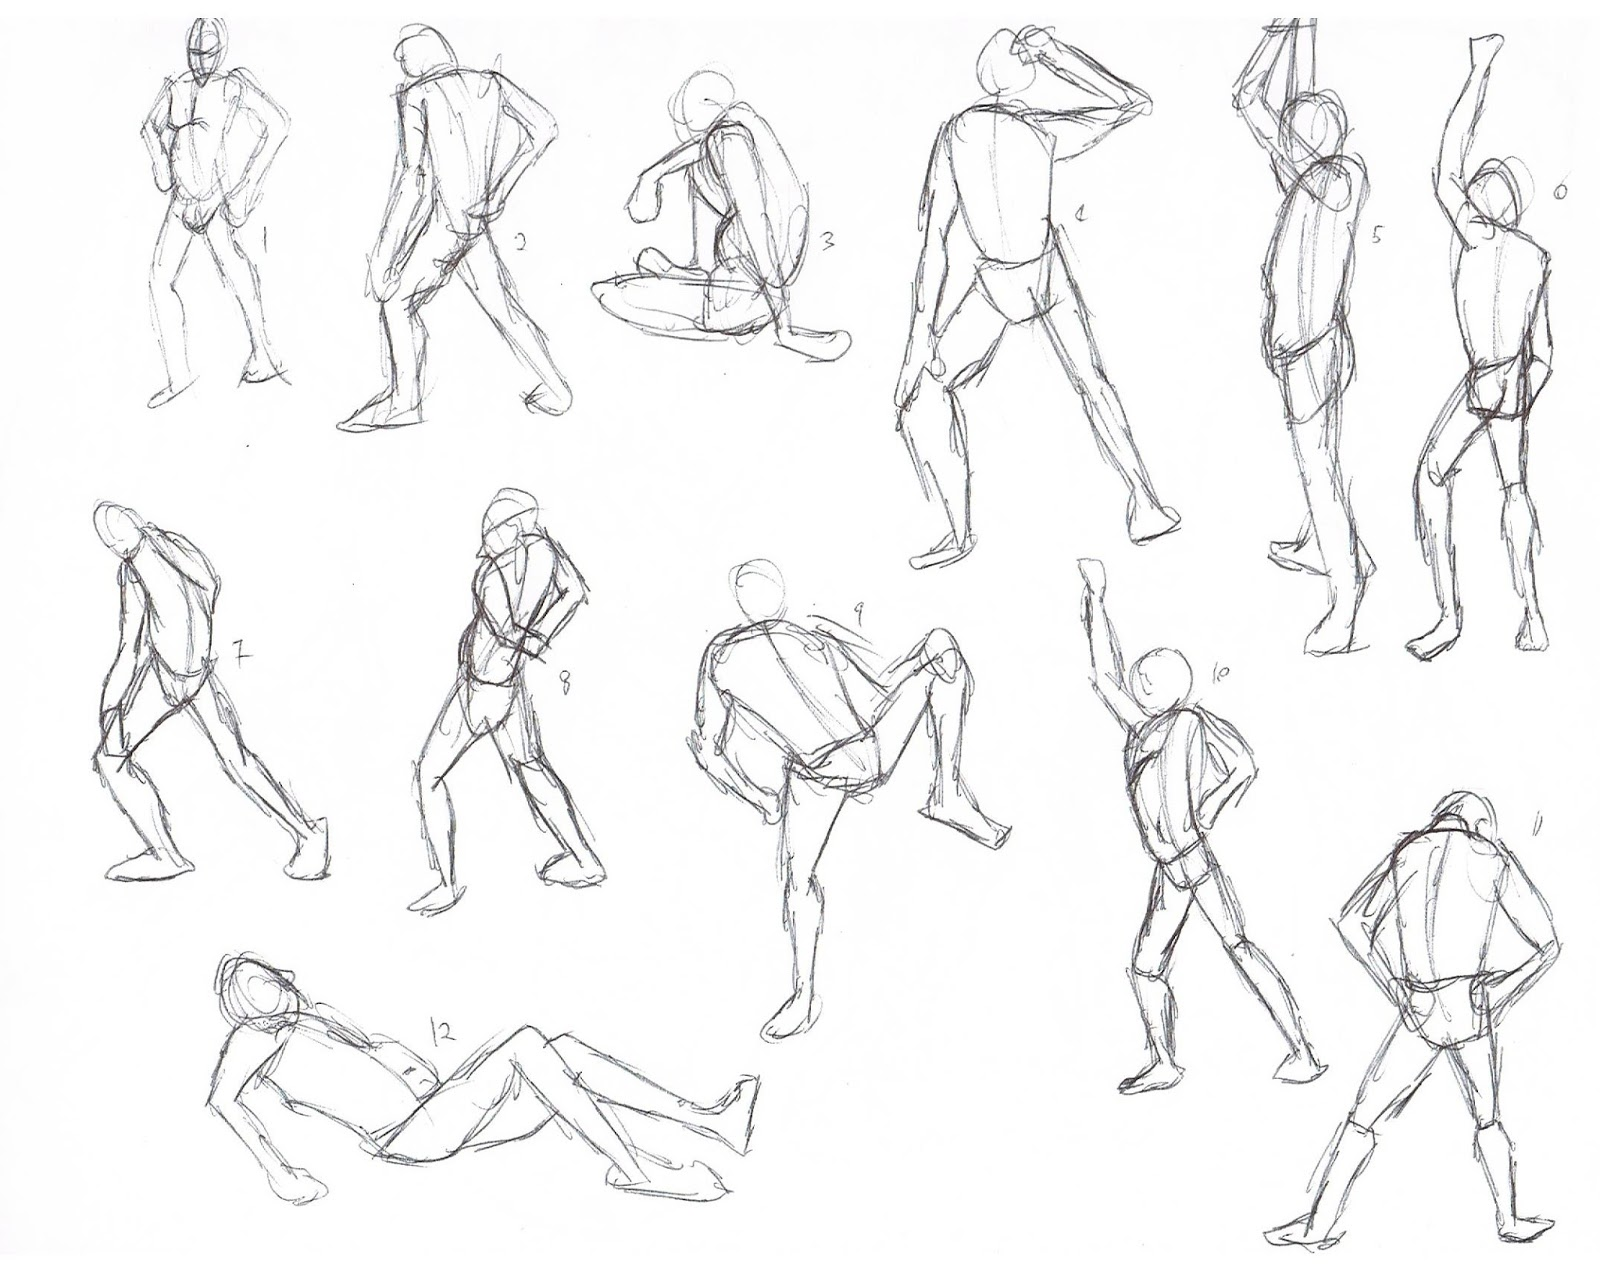 Standing poses, Anime and Galleries on Pinterest